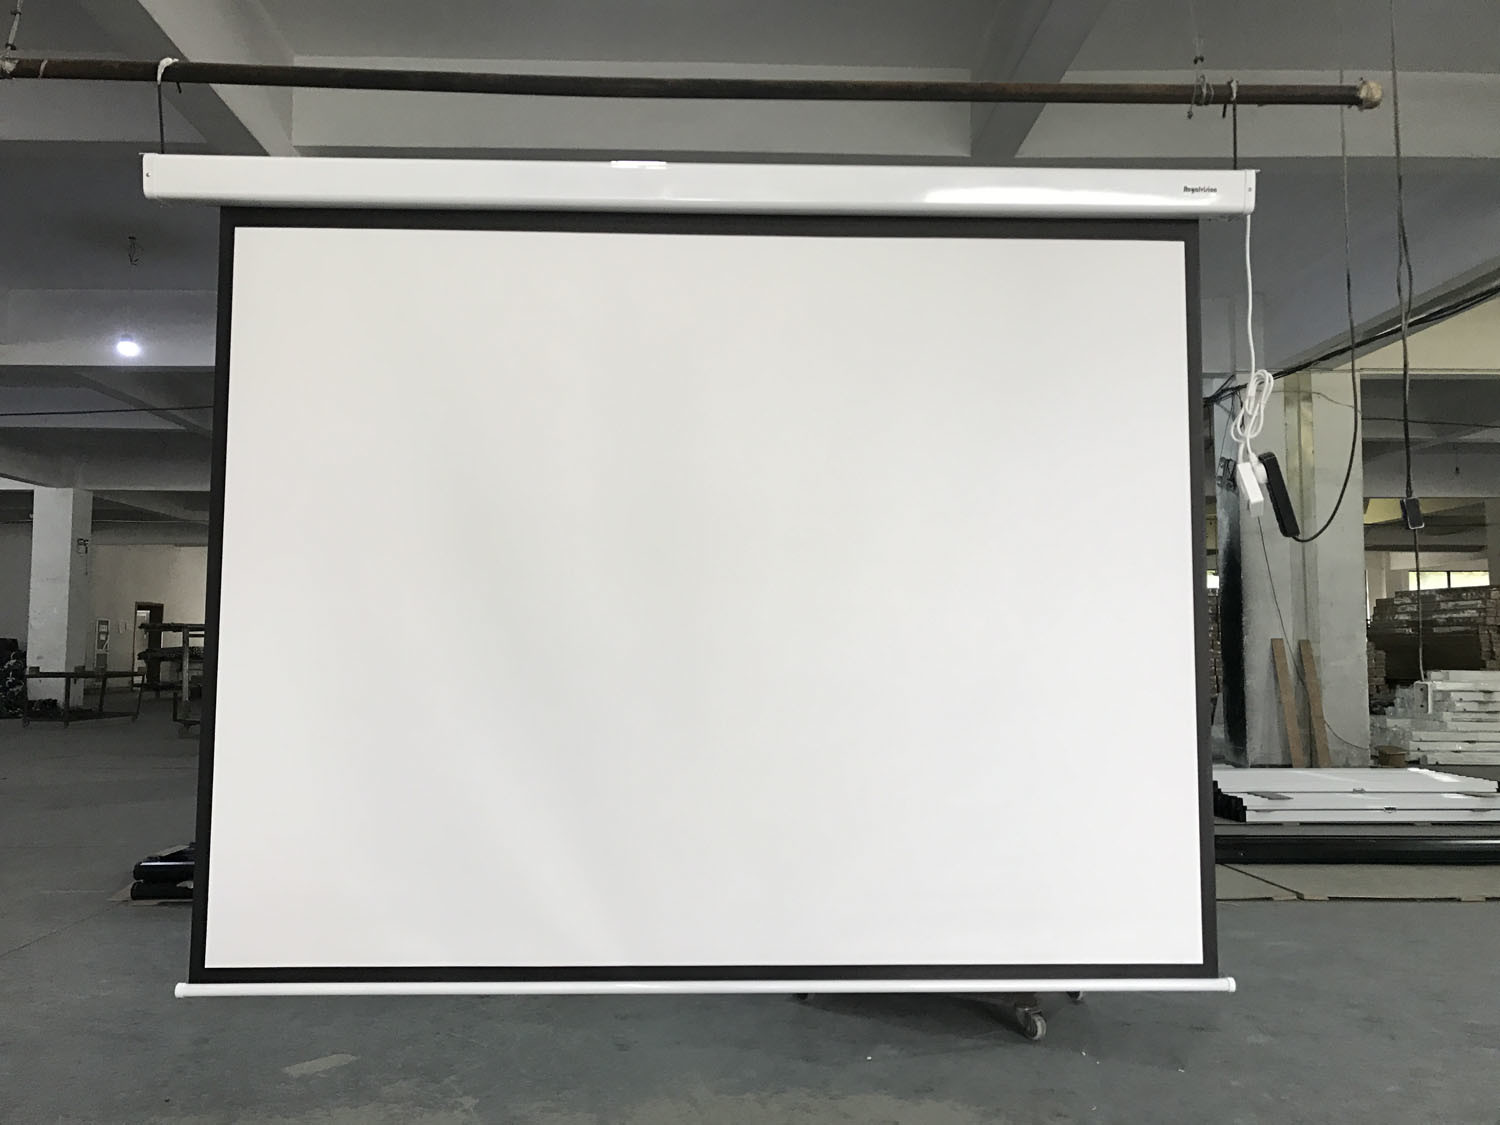 China Tab Tension Electrical Projector Screen China Projection Screen Overhead Projector